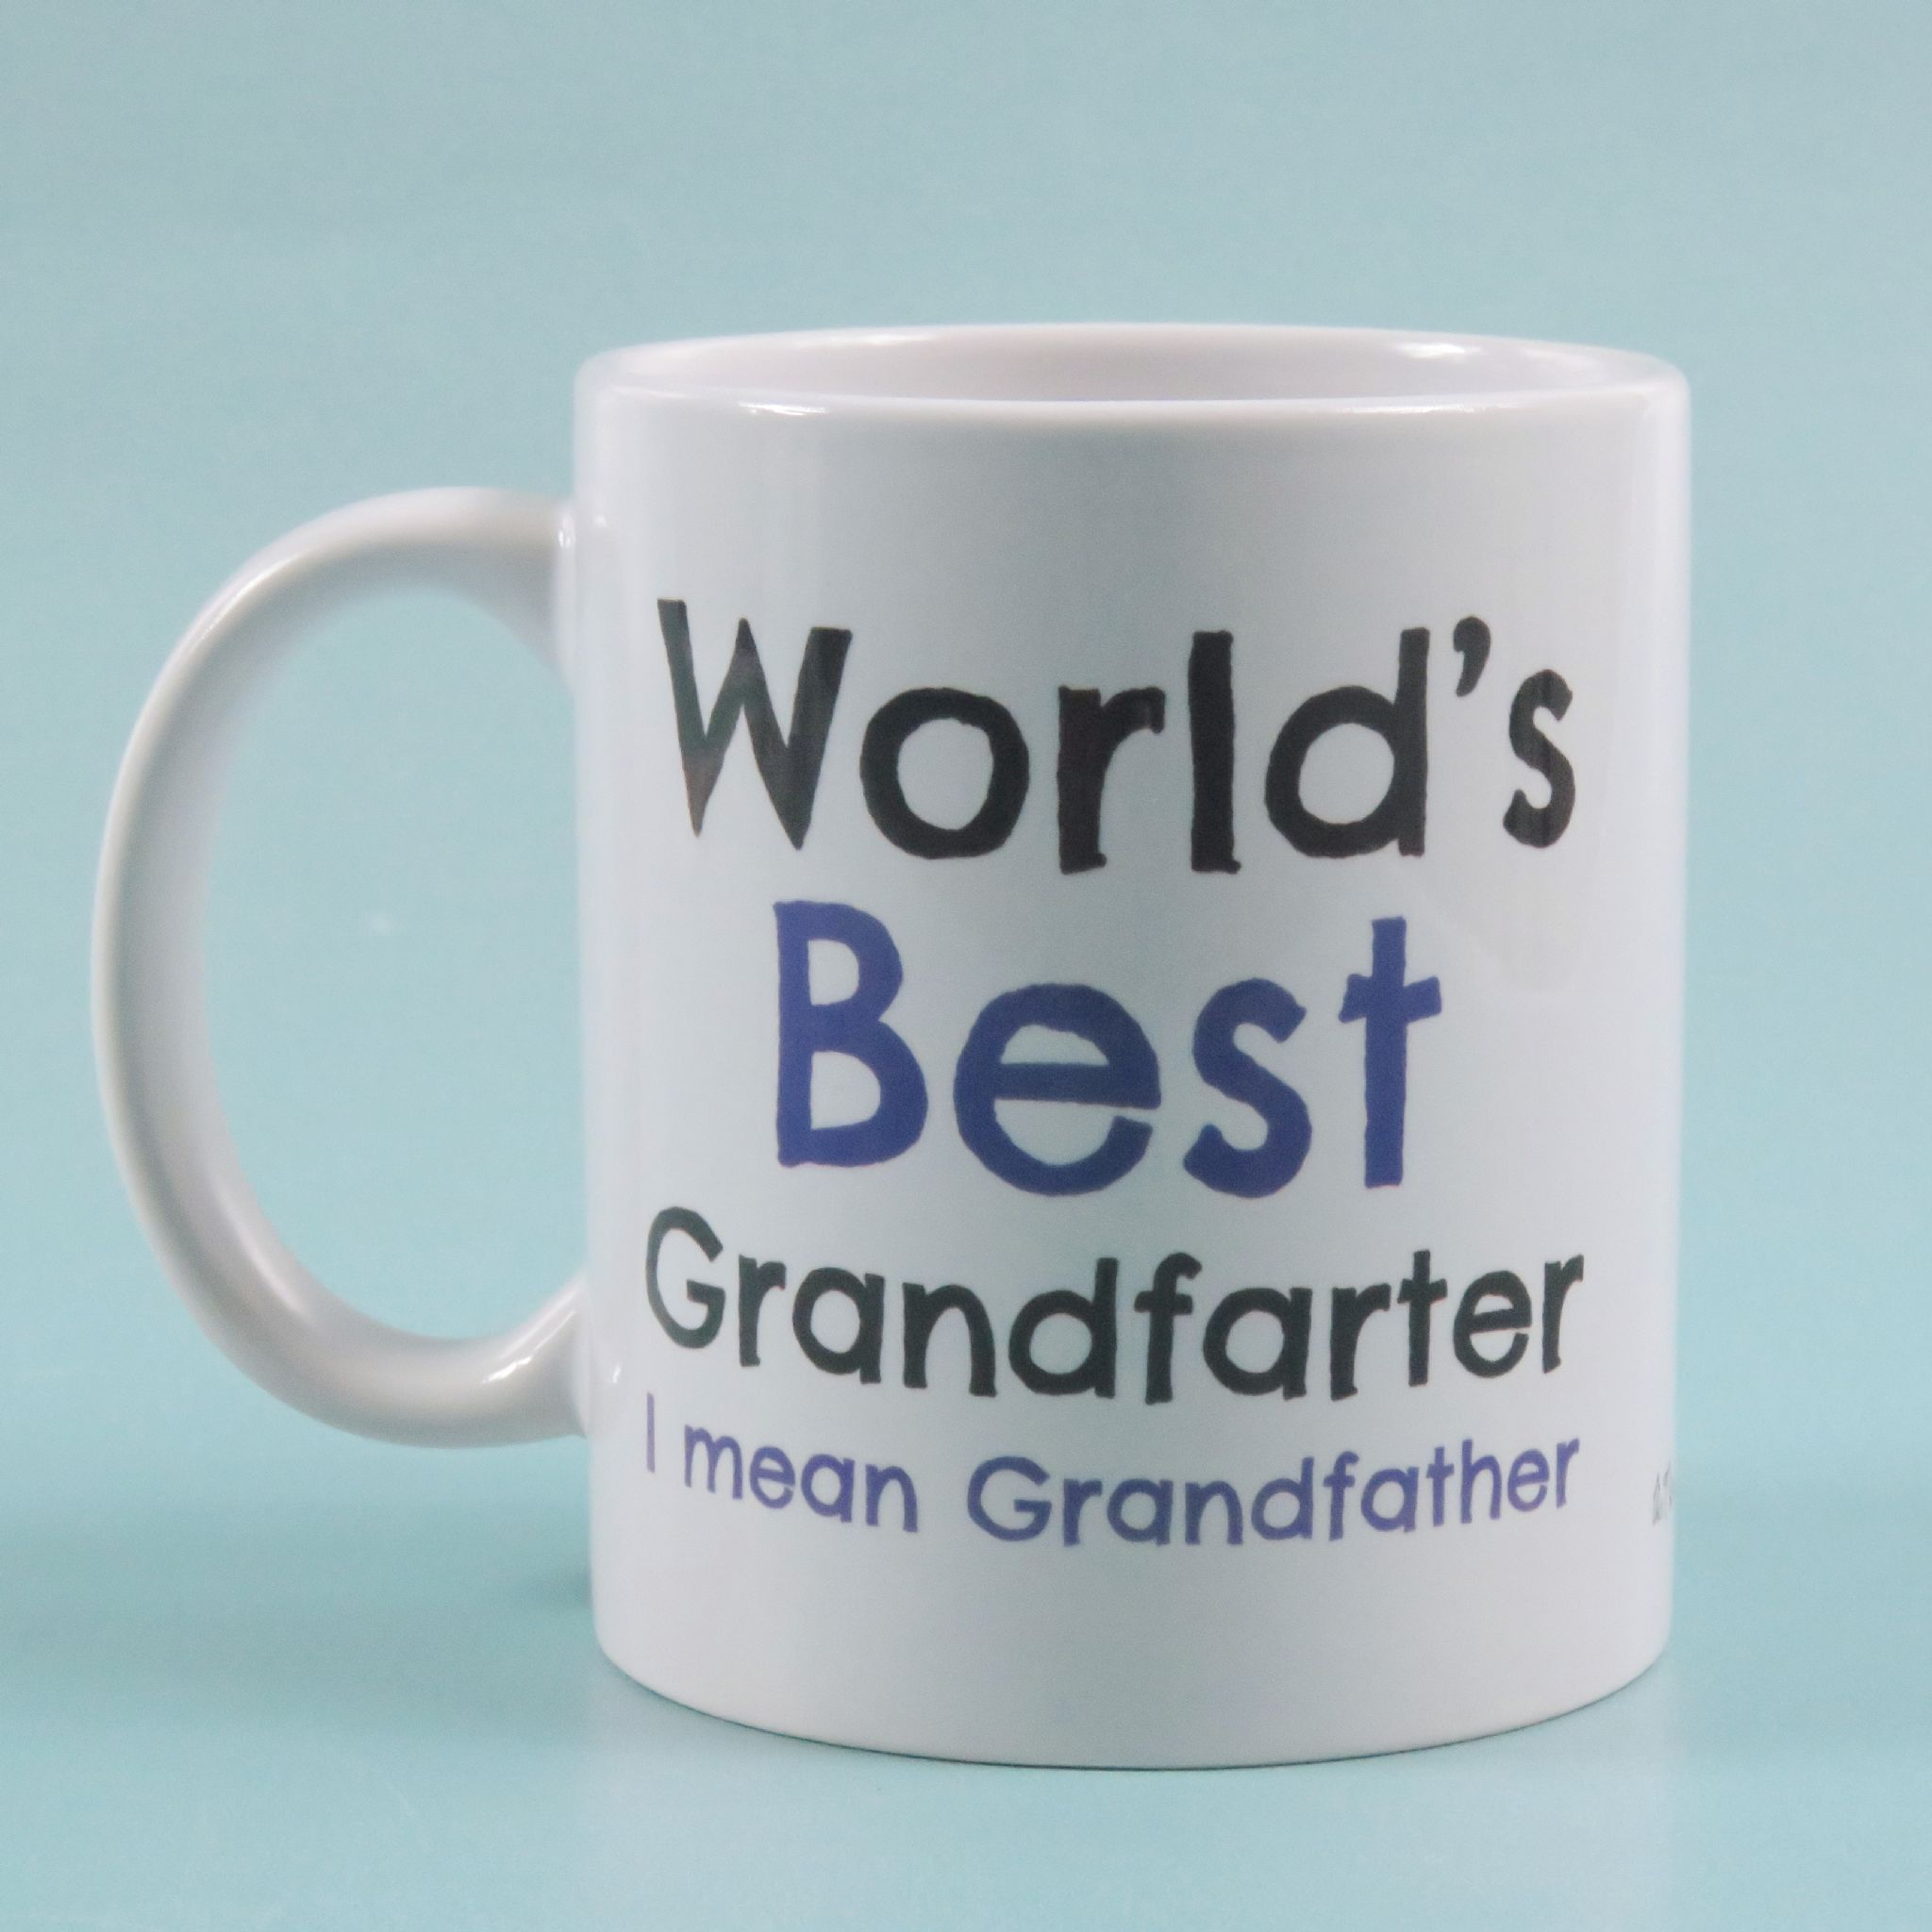 Worlds best grandfarter mean grandfather Fathers Day Gift Grandad Mug Birthday Coffee Gift grandad